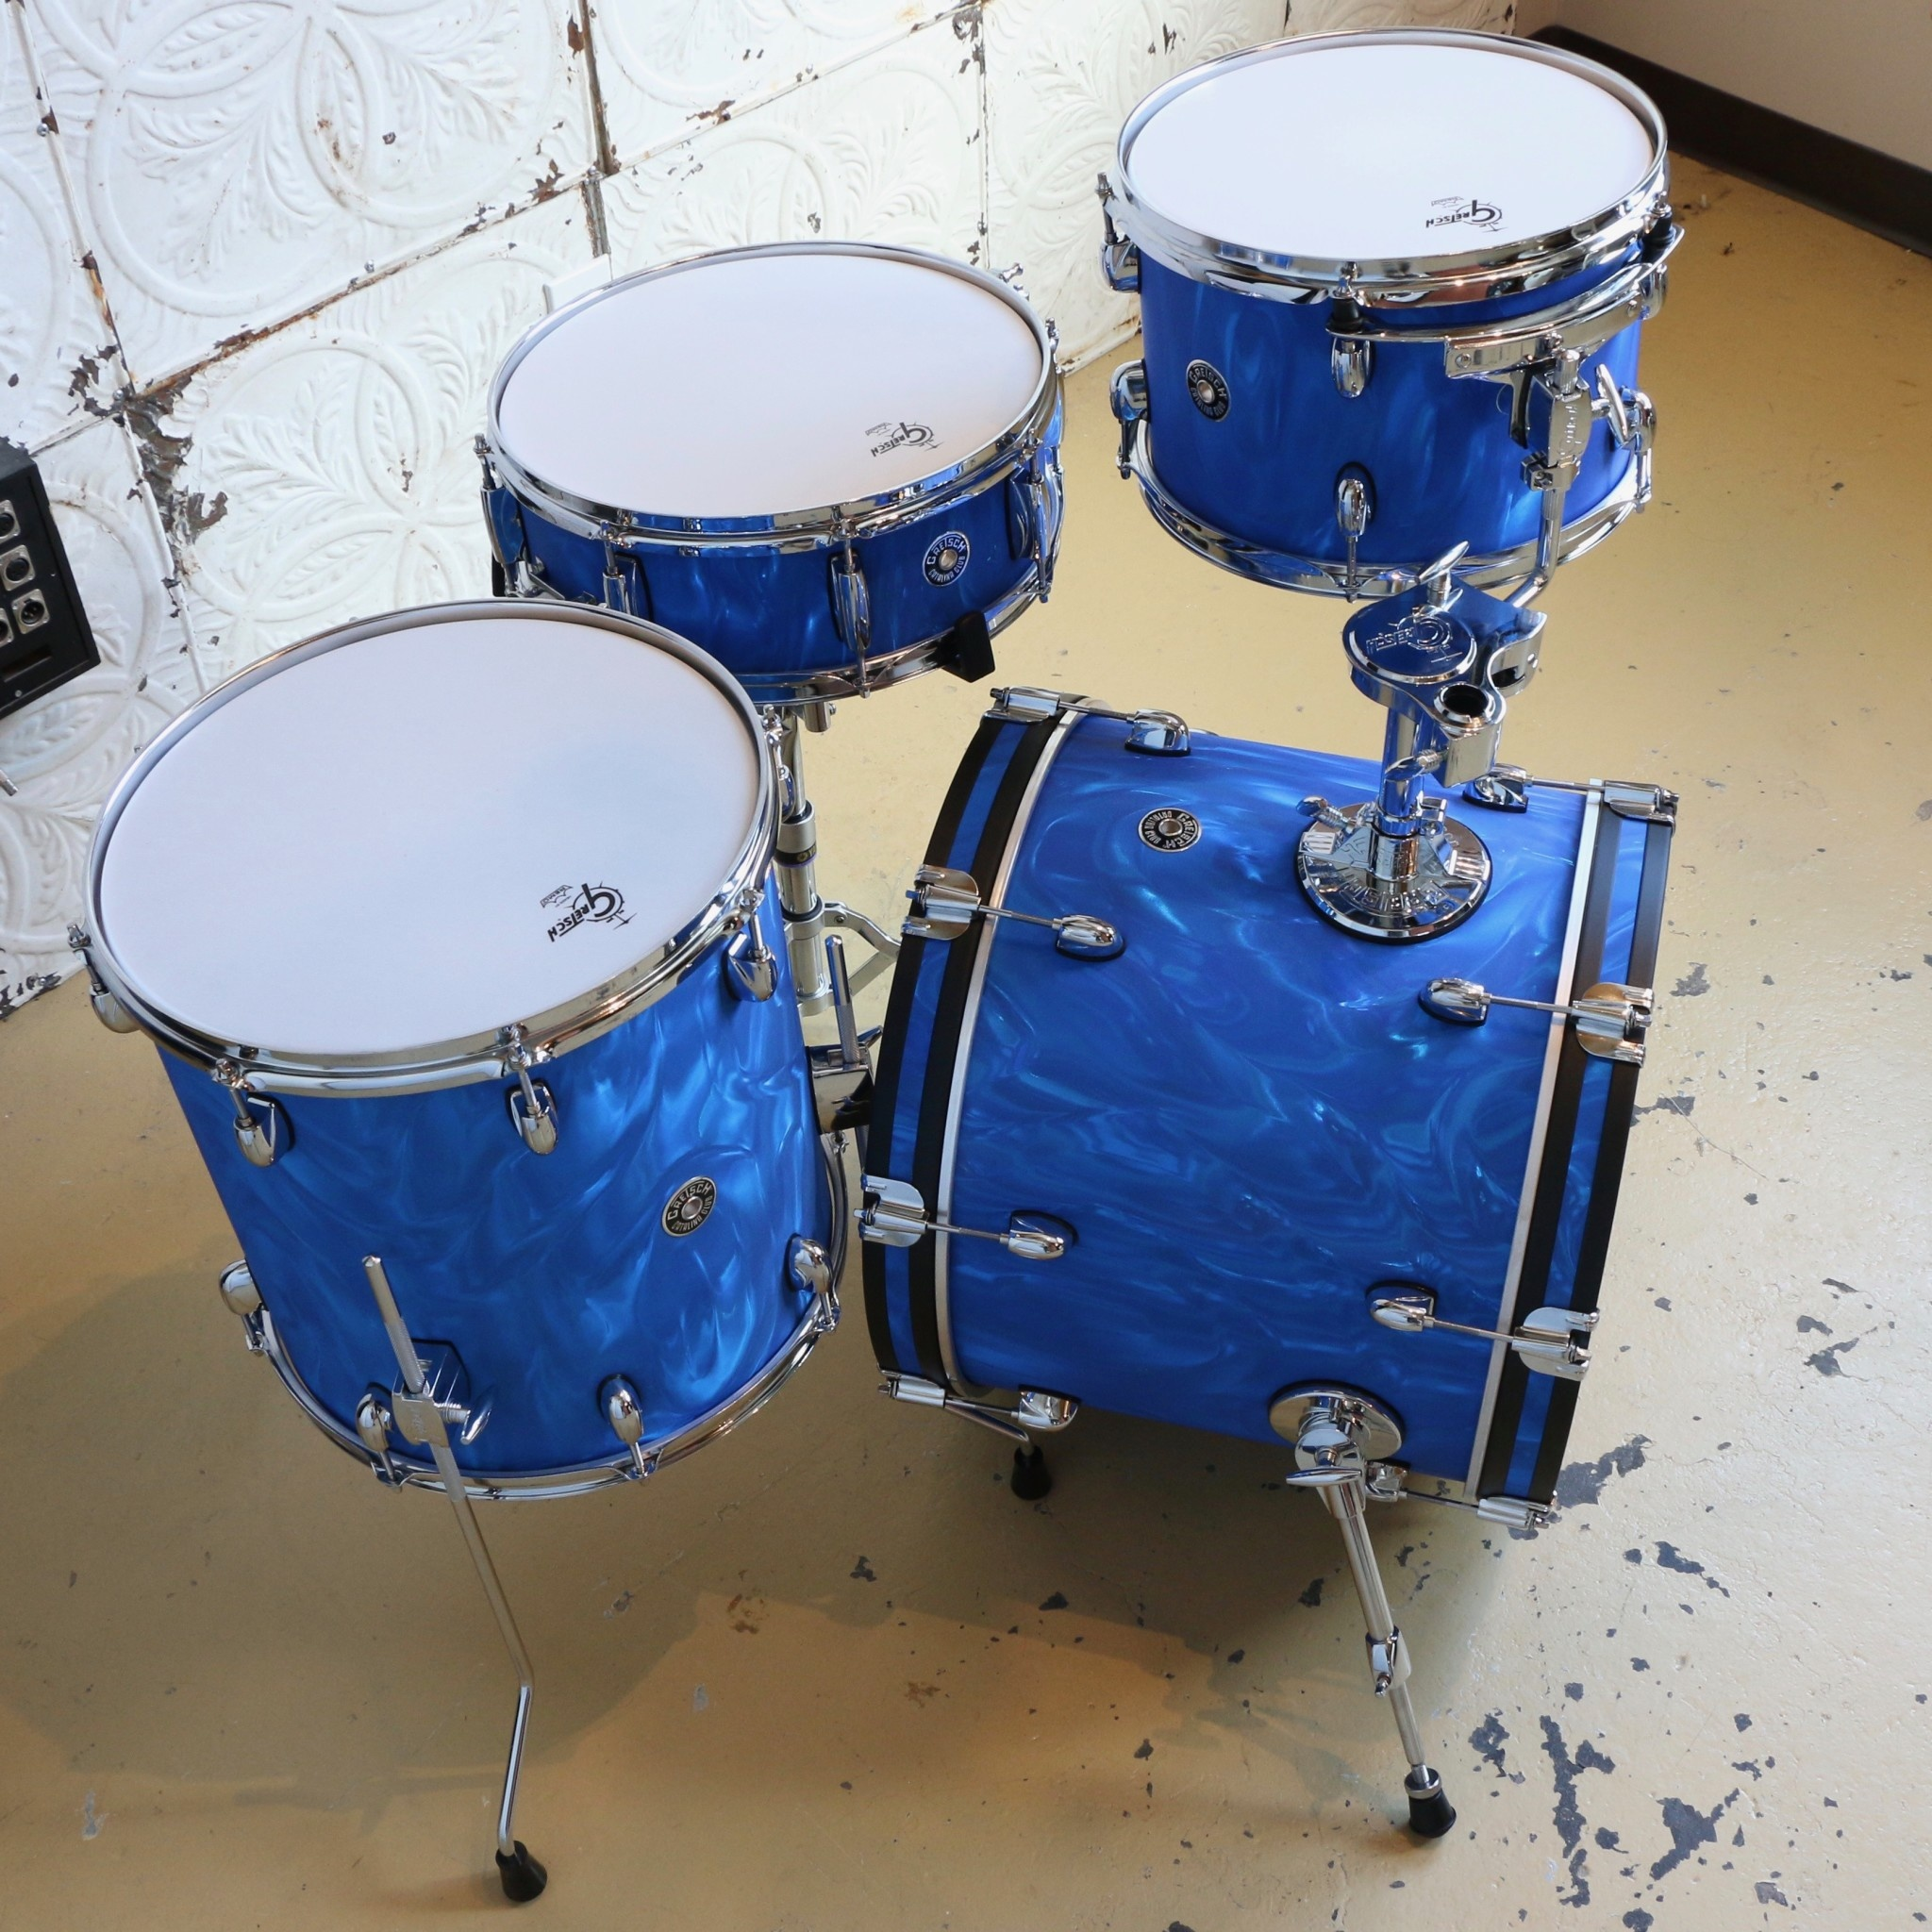 Gretsch Batterie Gretsch Catalina Club 18-12-14po + caisse claire 14po - Blue Satin Flame